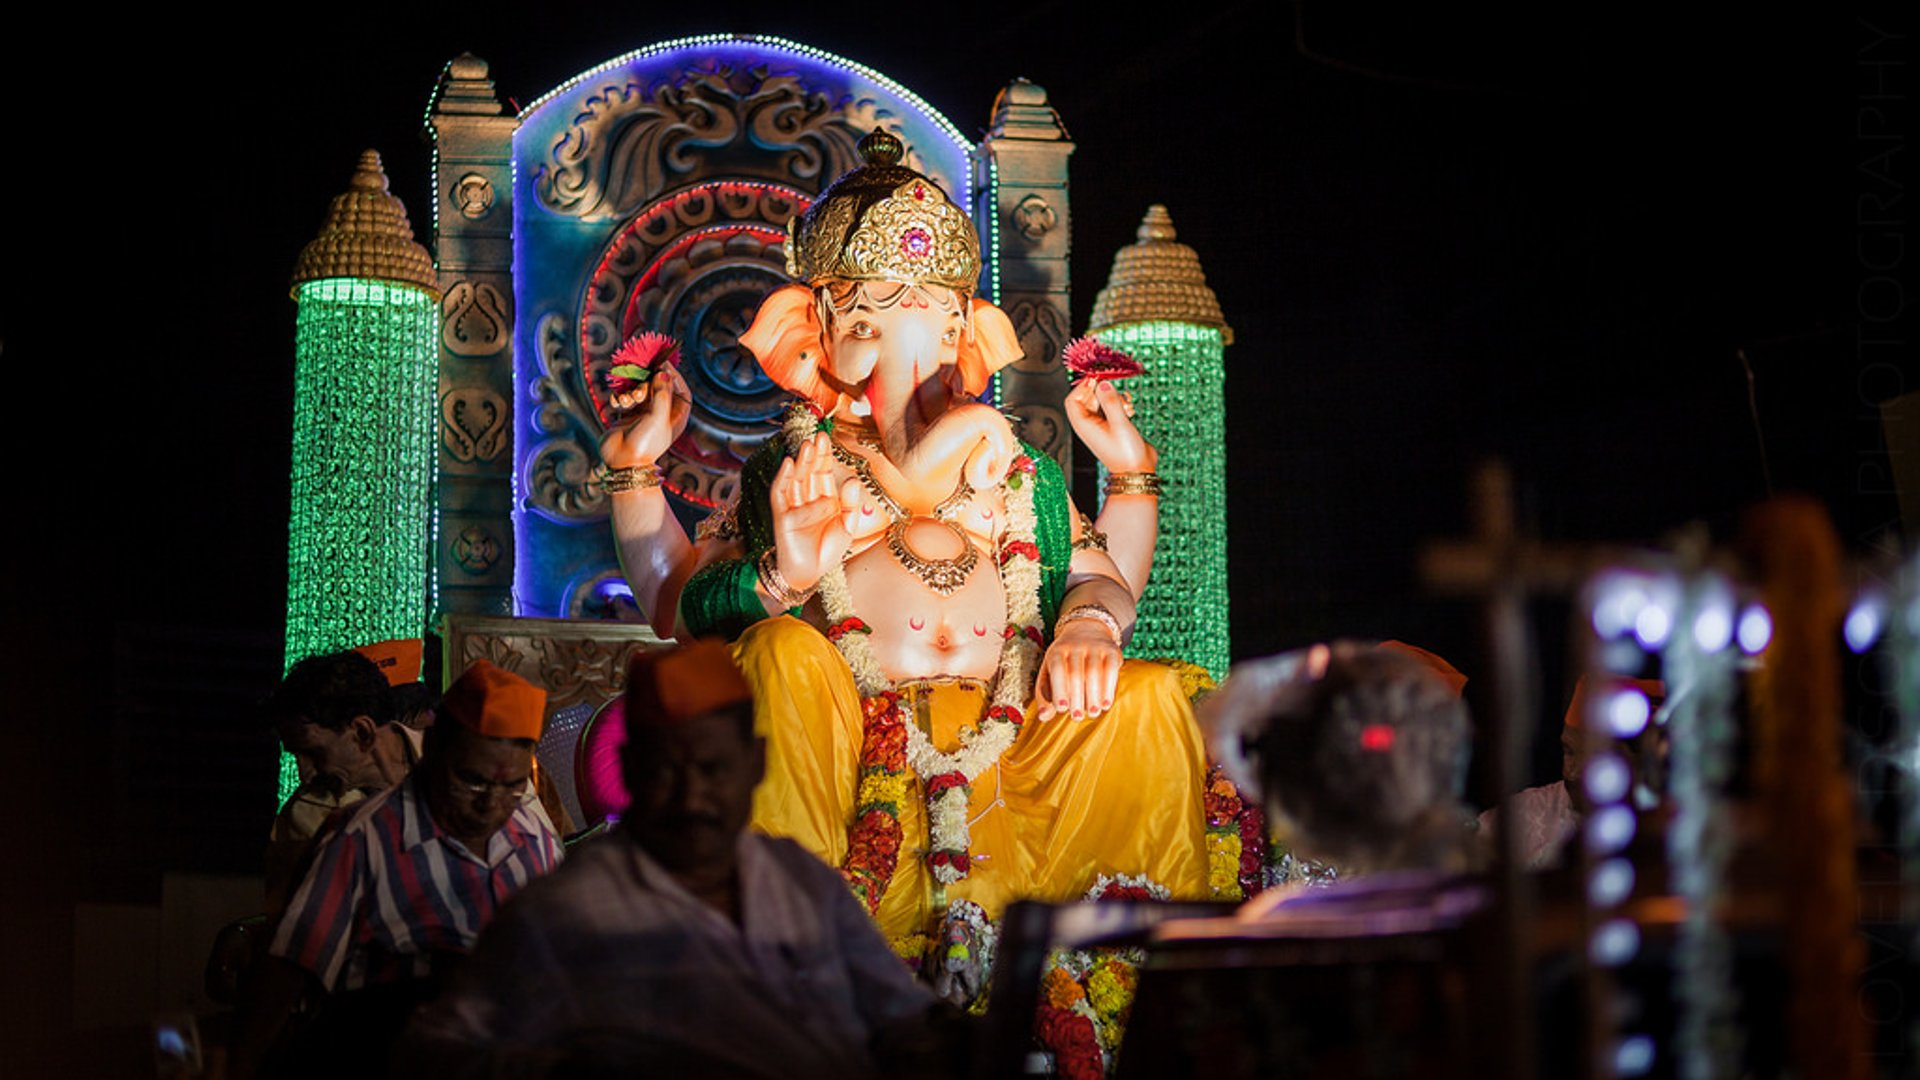 Ganesh Festival 2020.Ganesh Chaturthi 2020 In Goa Dates